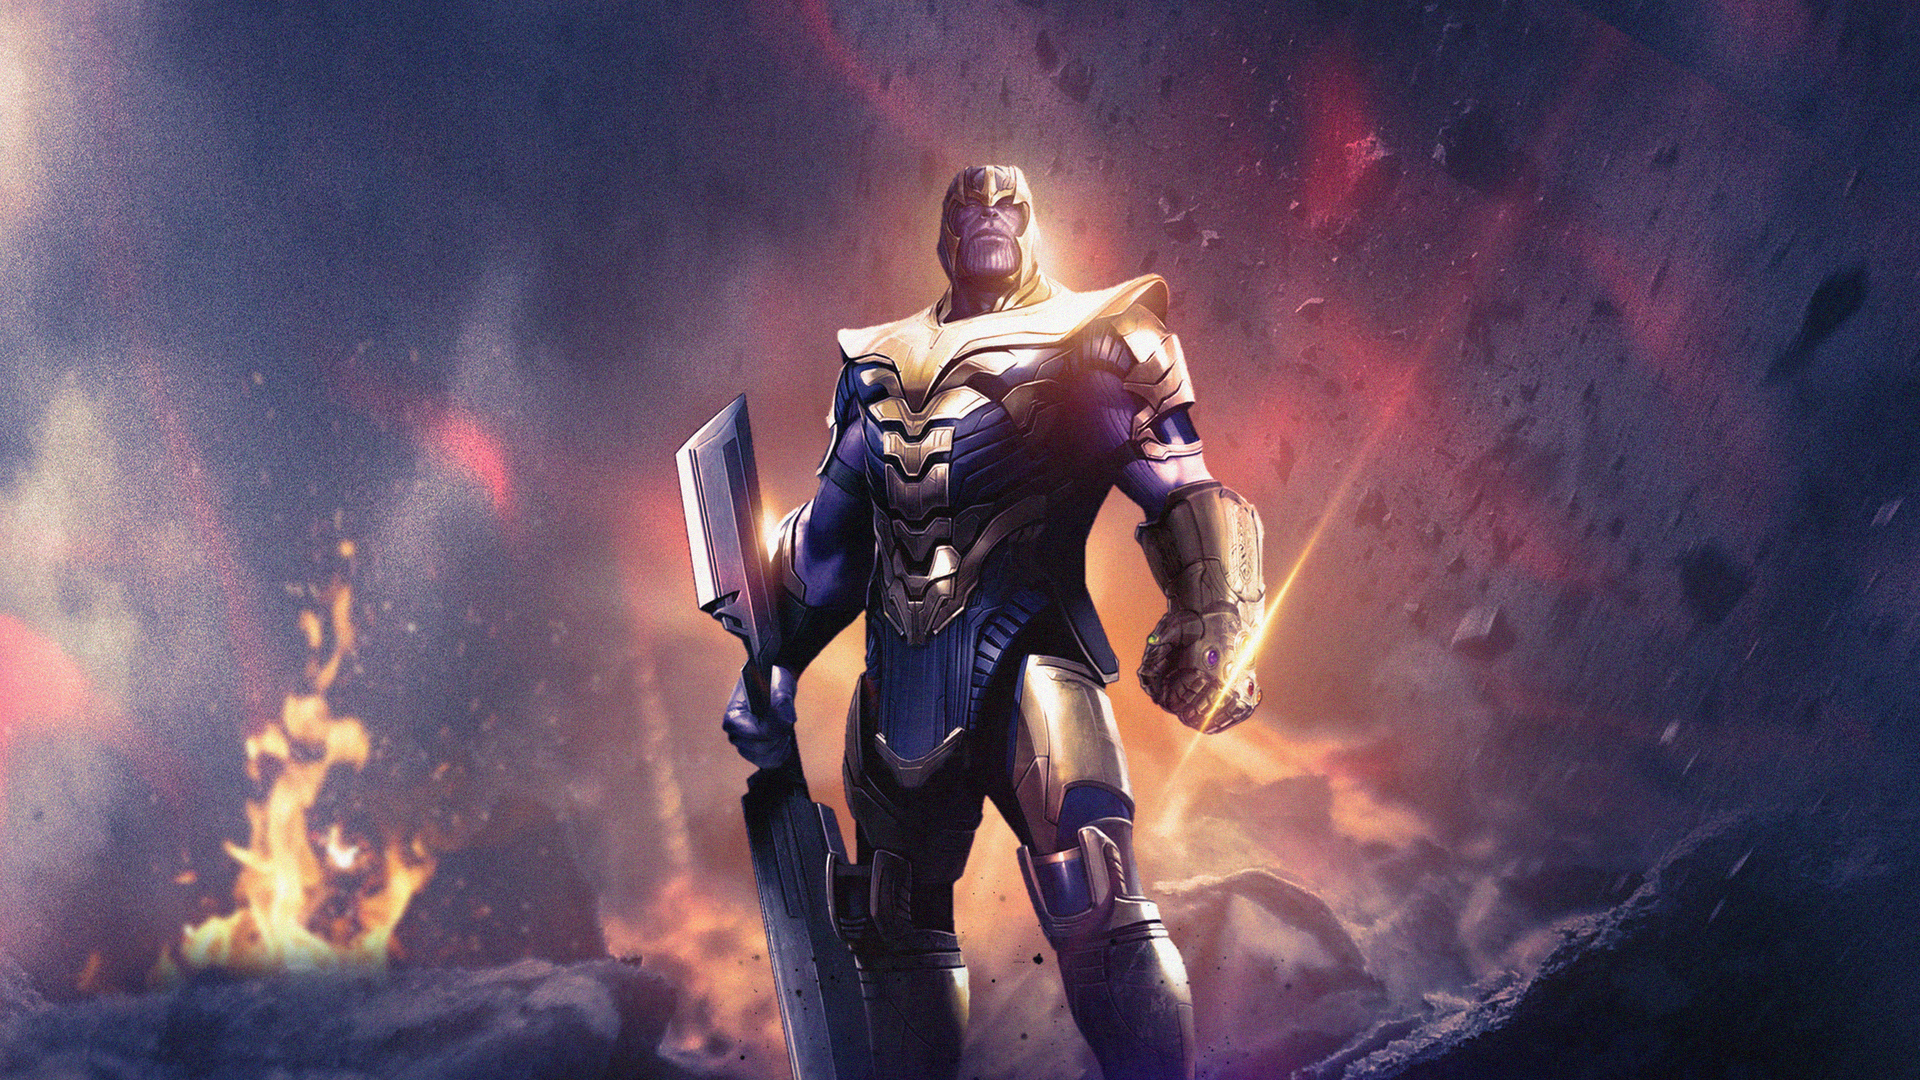 1920x1080 Avengers Endgame Thanos 4k Laptop Full HD 1080P ...